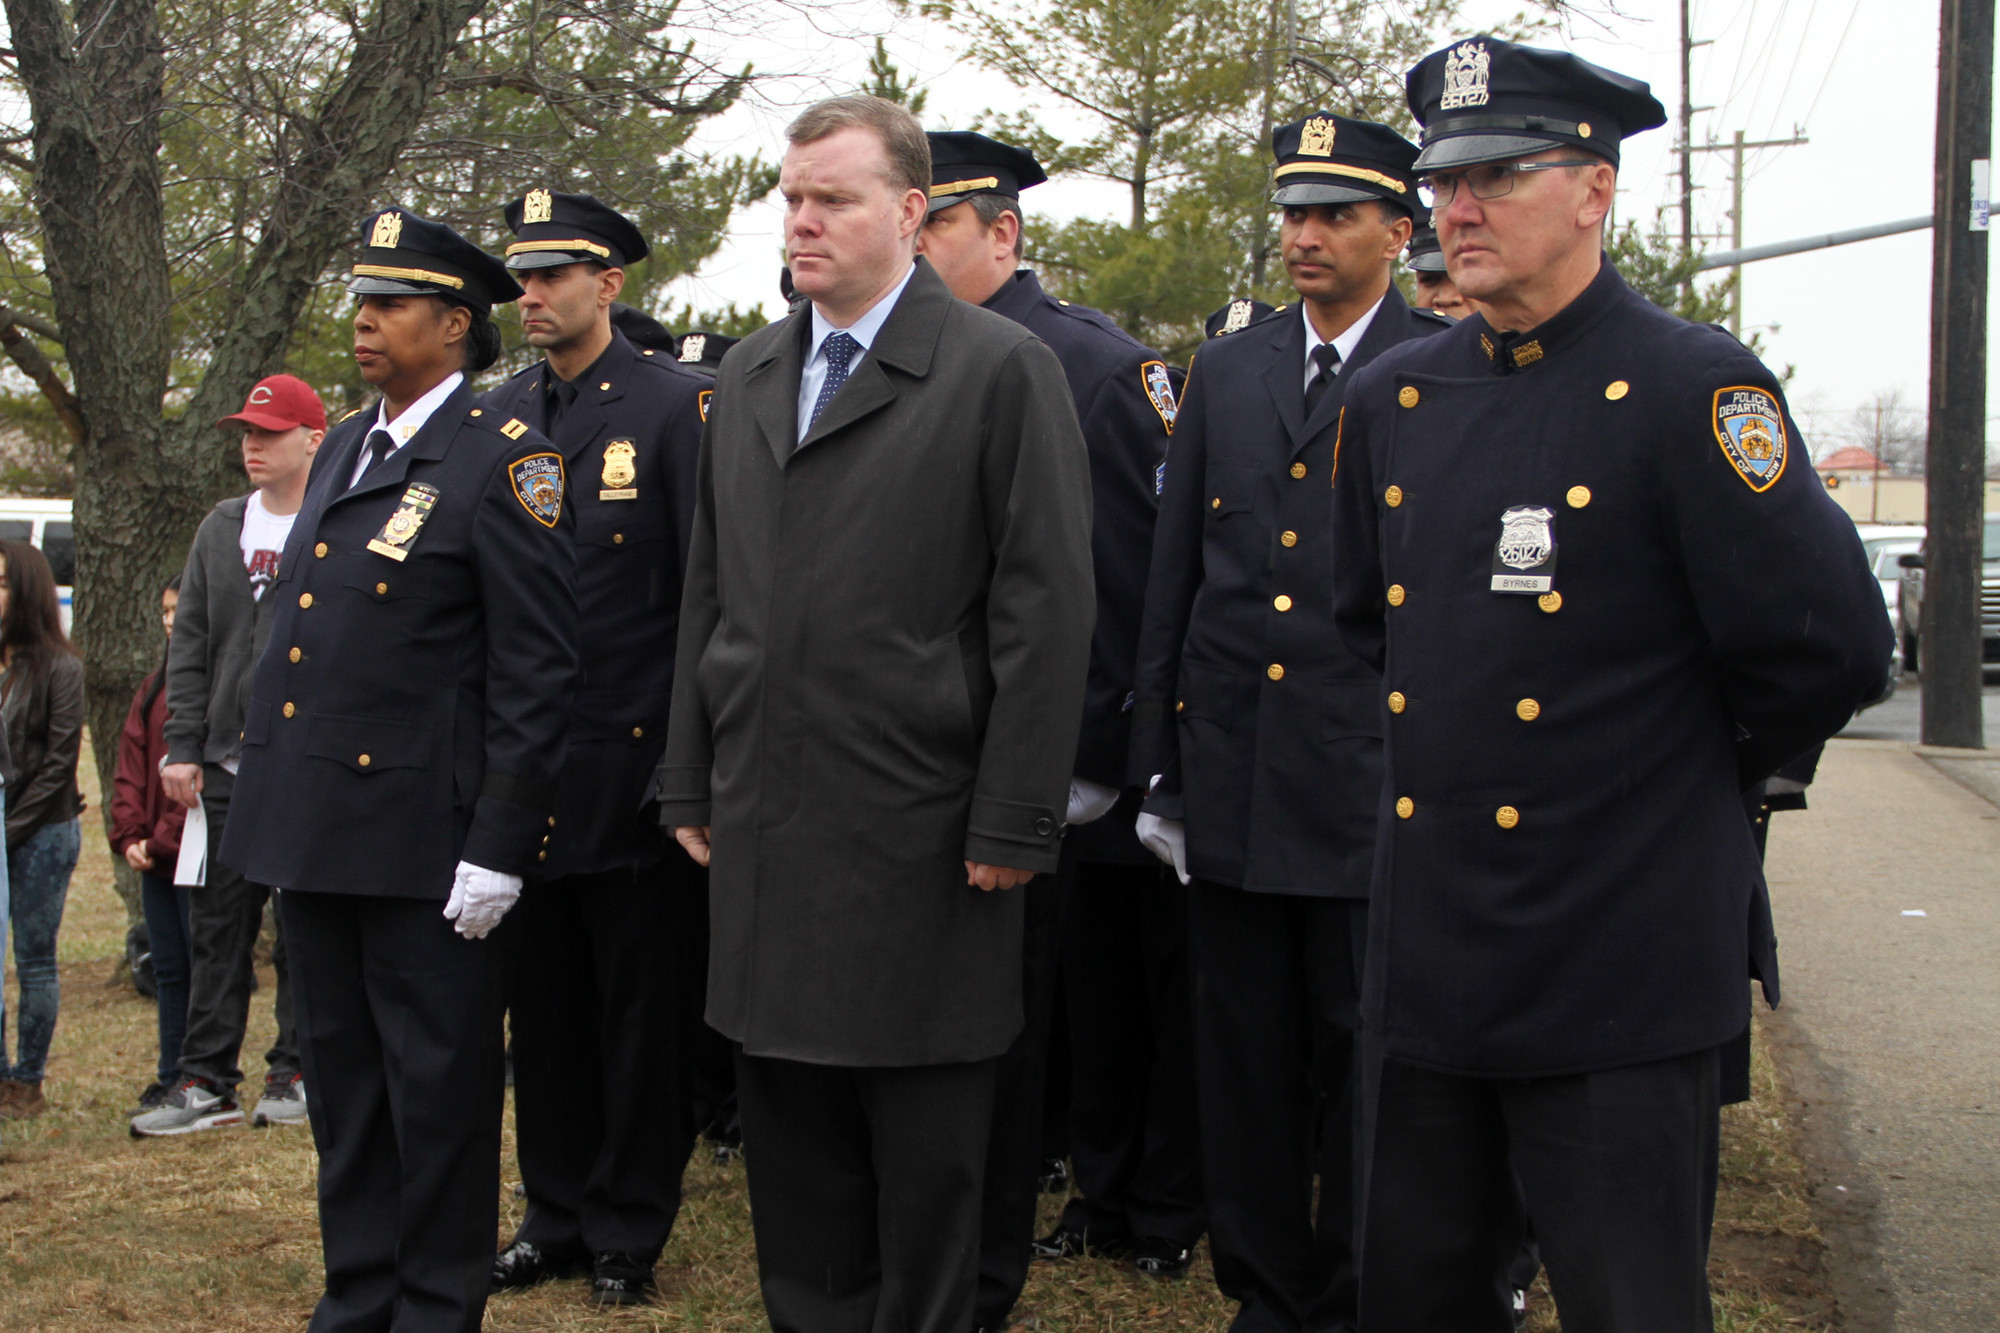 Dozens of NYPD officers came to East Meadow to pay their respects.